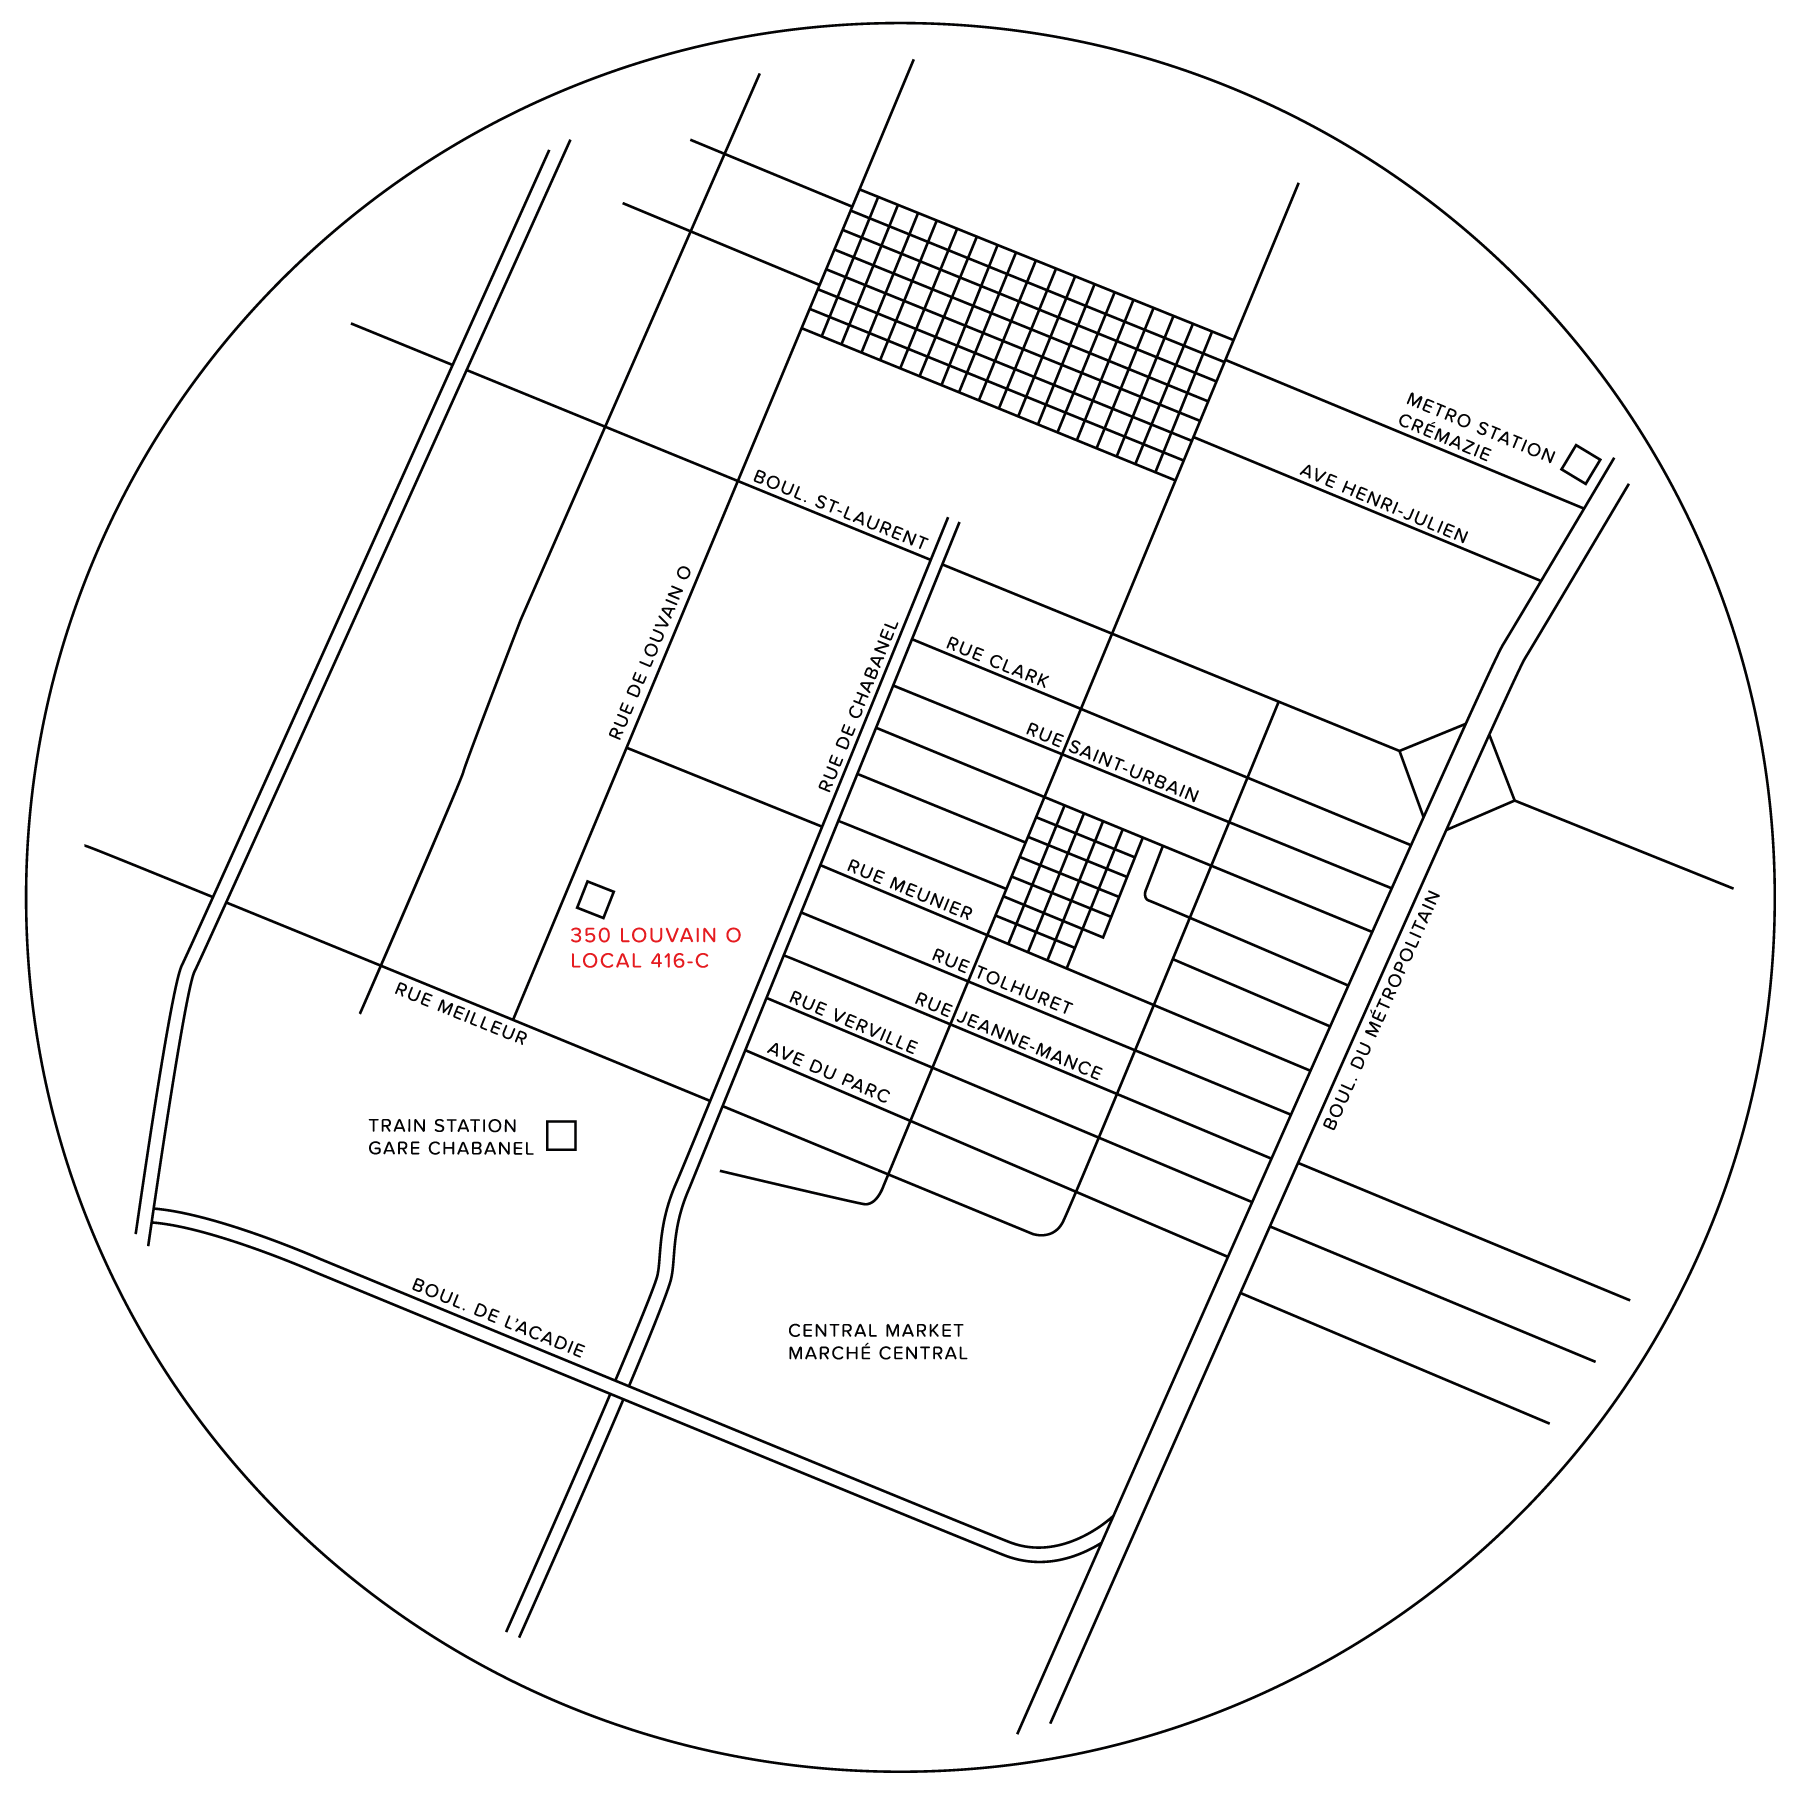 orbitafutura_studio_location_montreal_map_2019.png